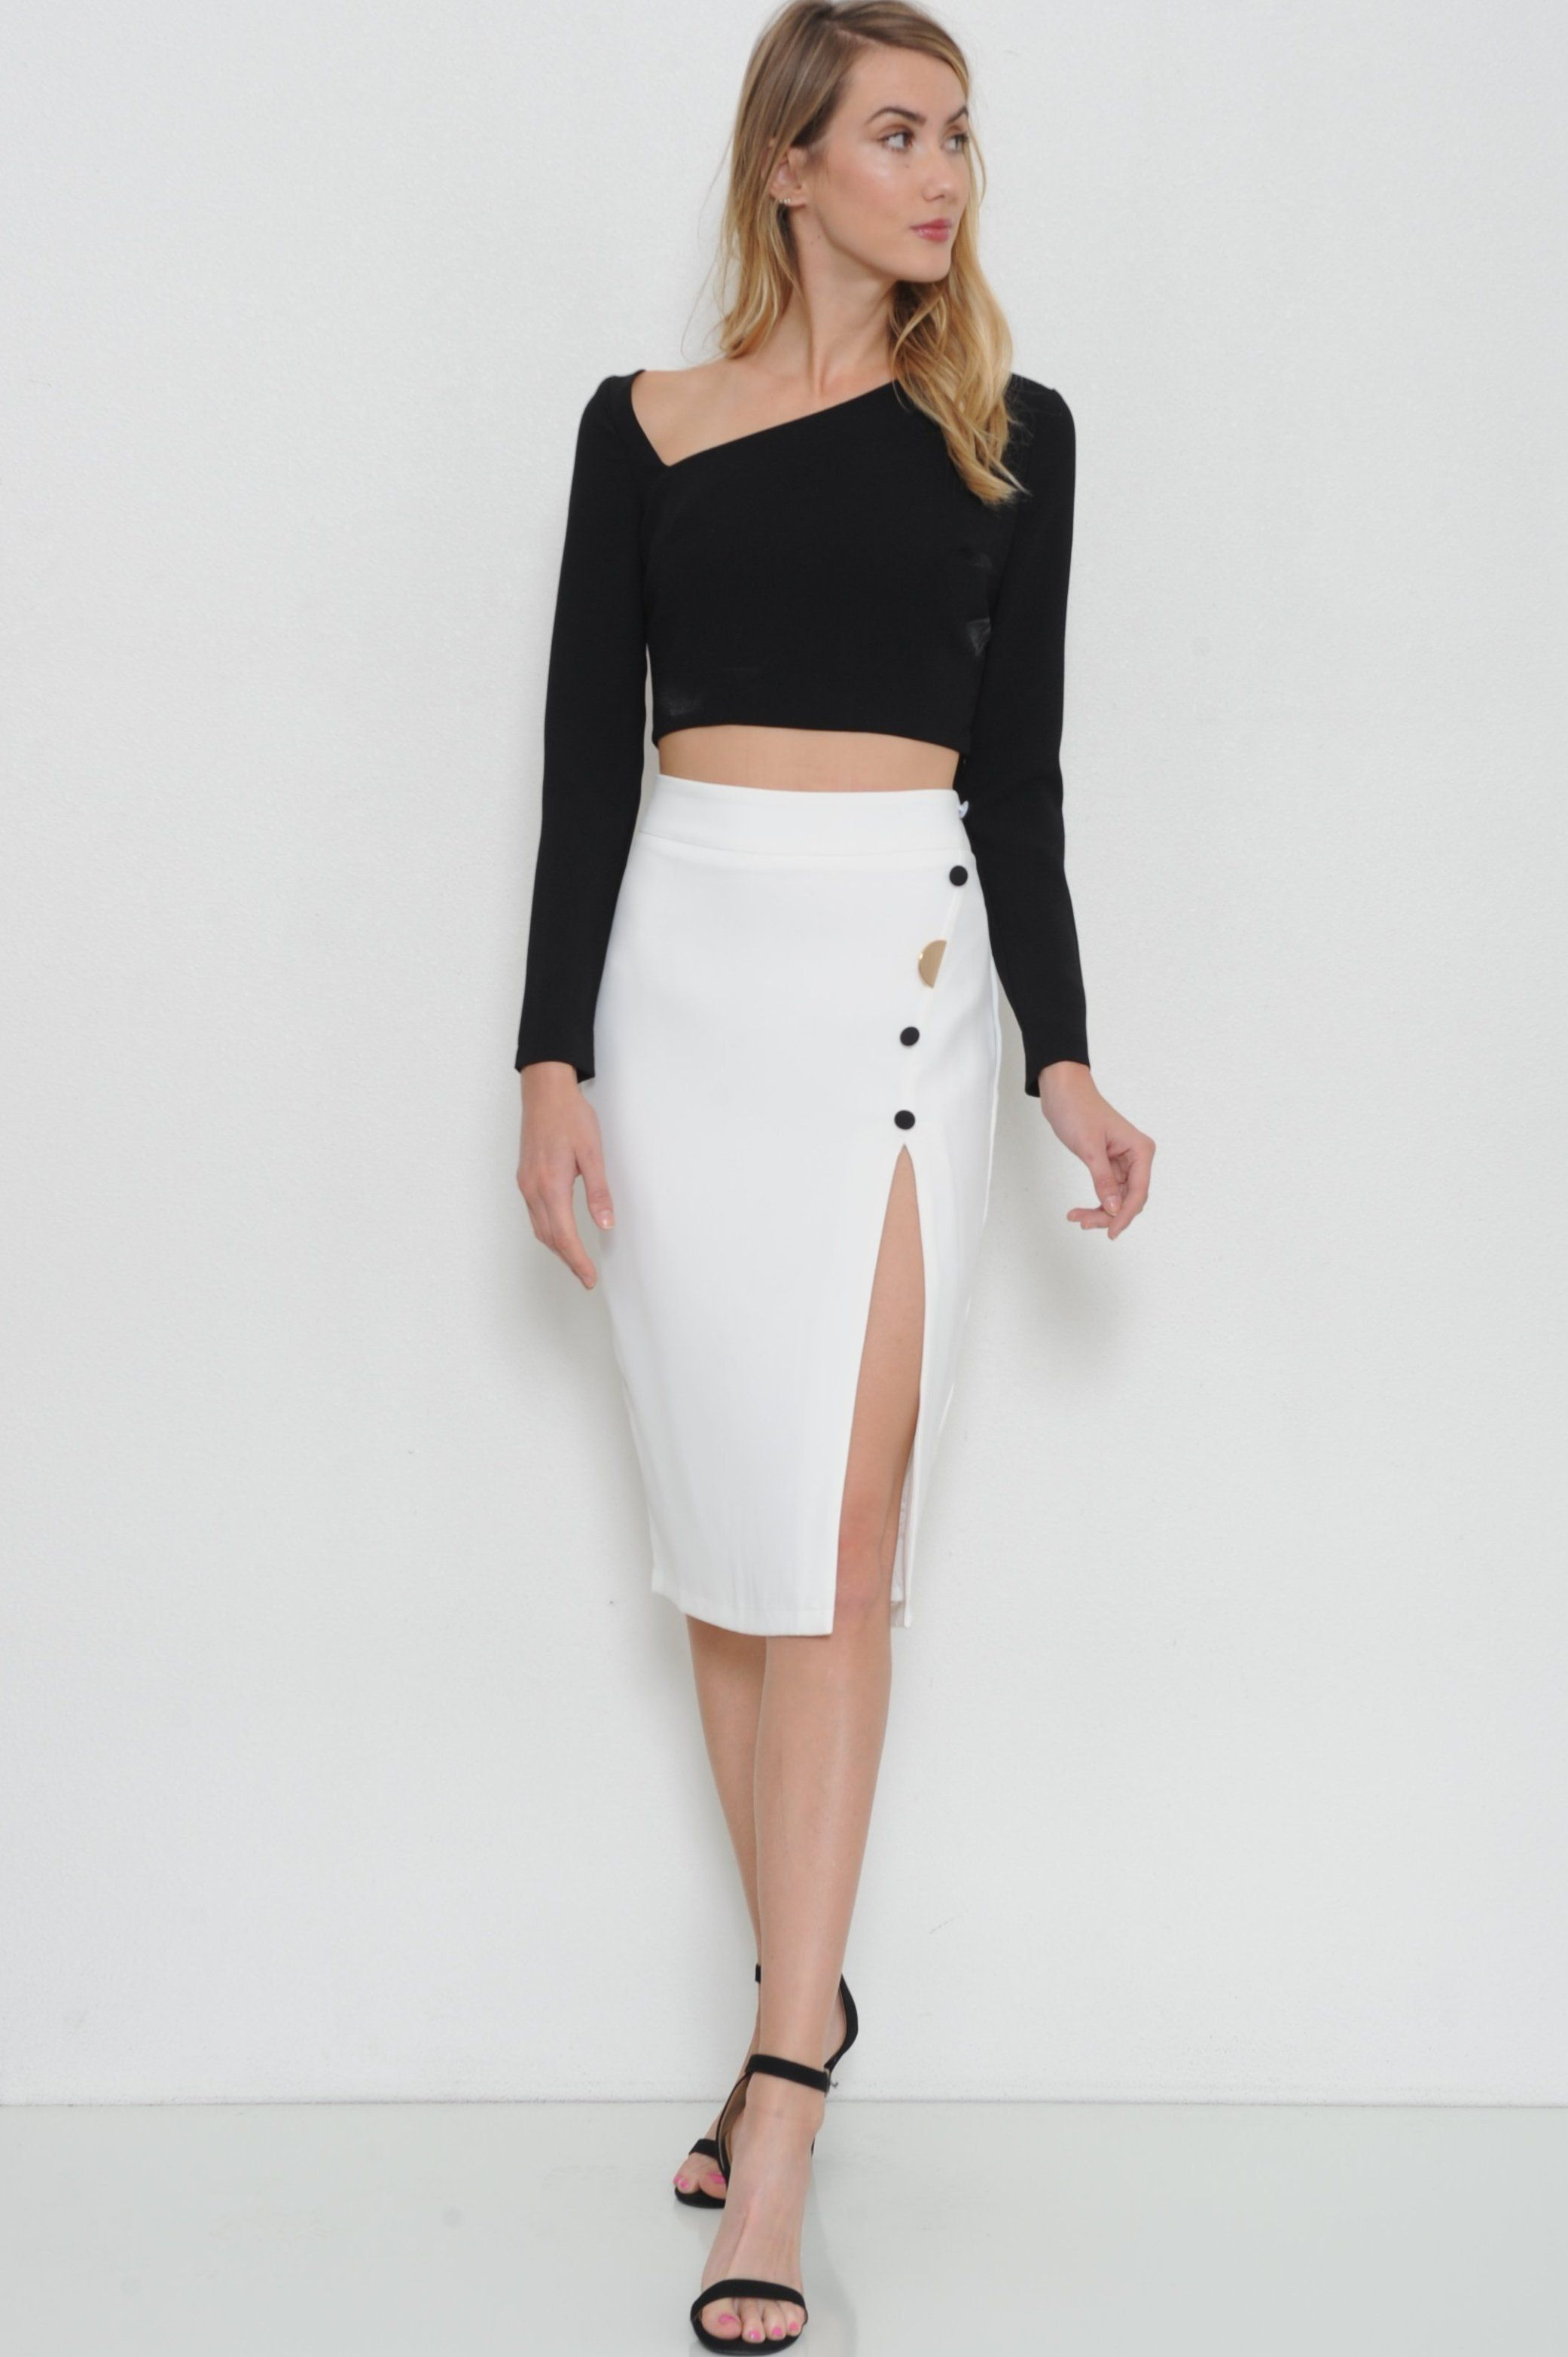 535f0b75b3f292 Show off all your best sides in this skirt set featuring v neck off the side  top. Tapered fit. Long sleeve. Skirt with 3/4 angled slit with black button  and ...